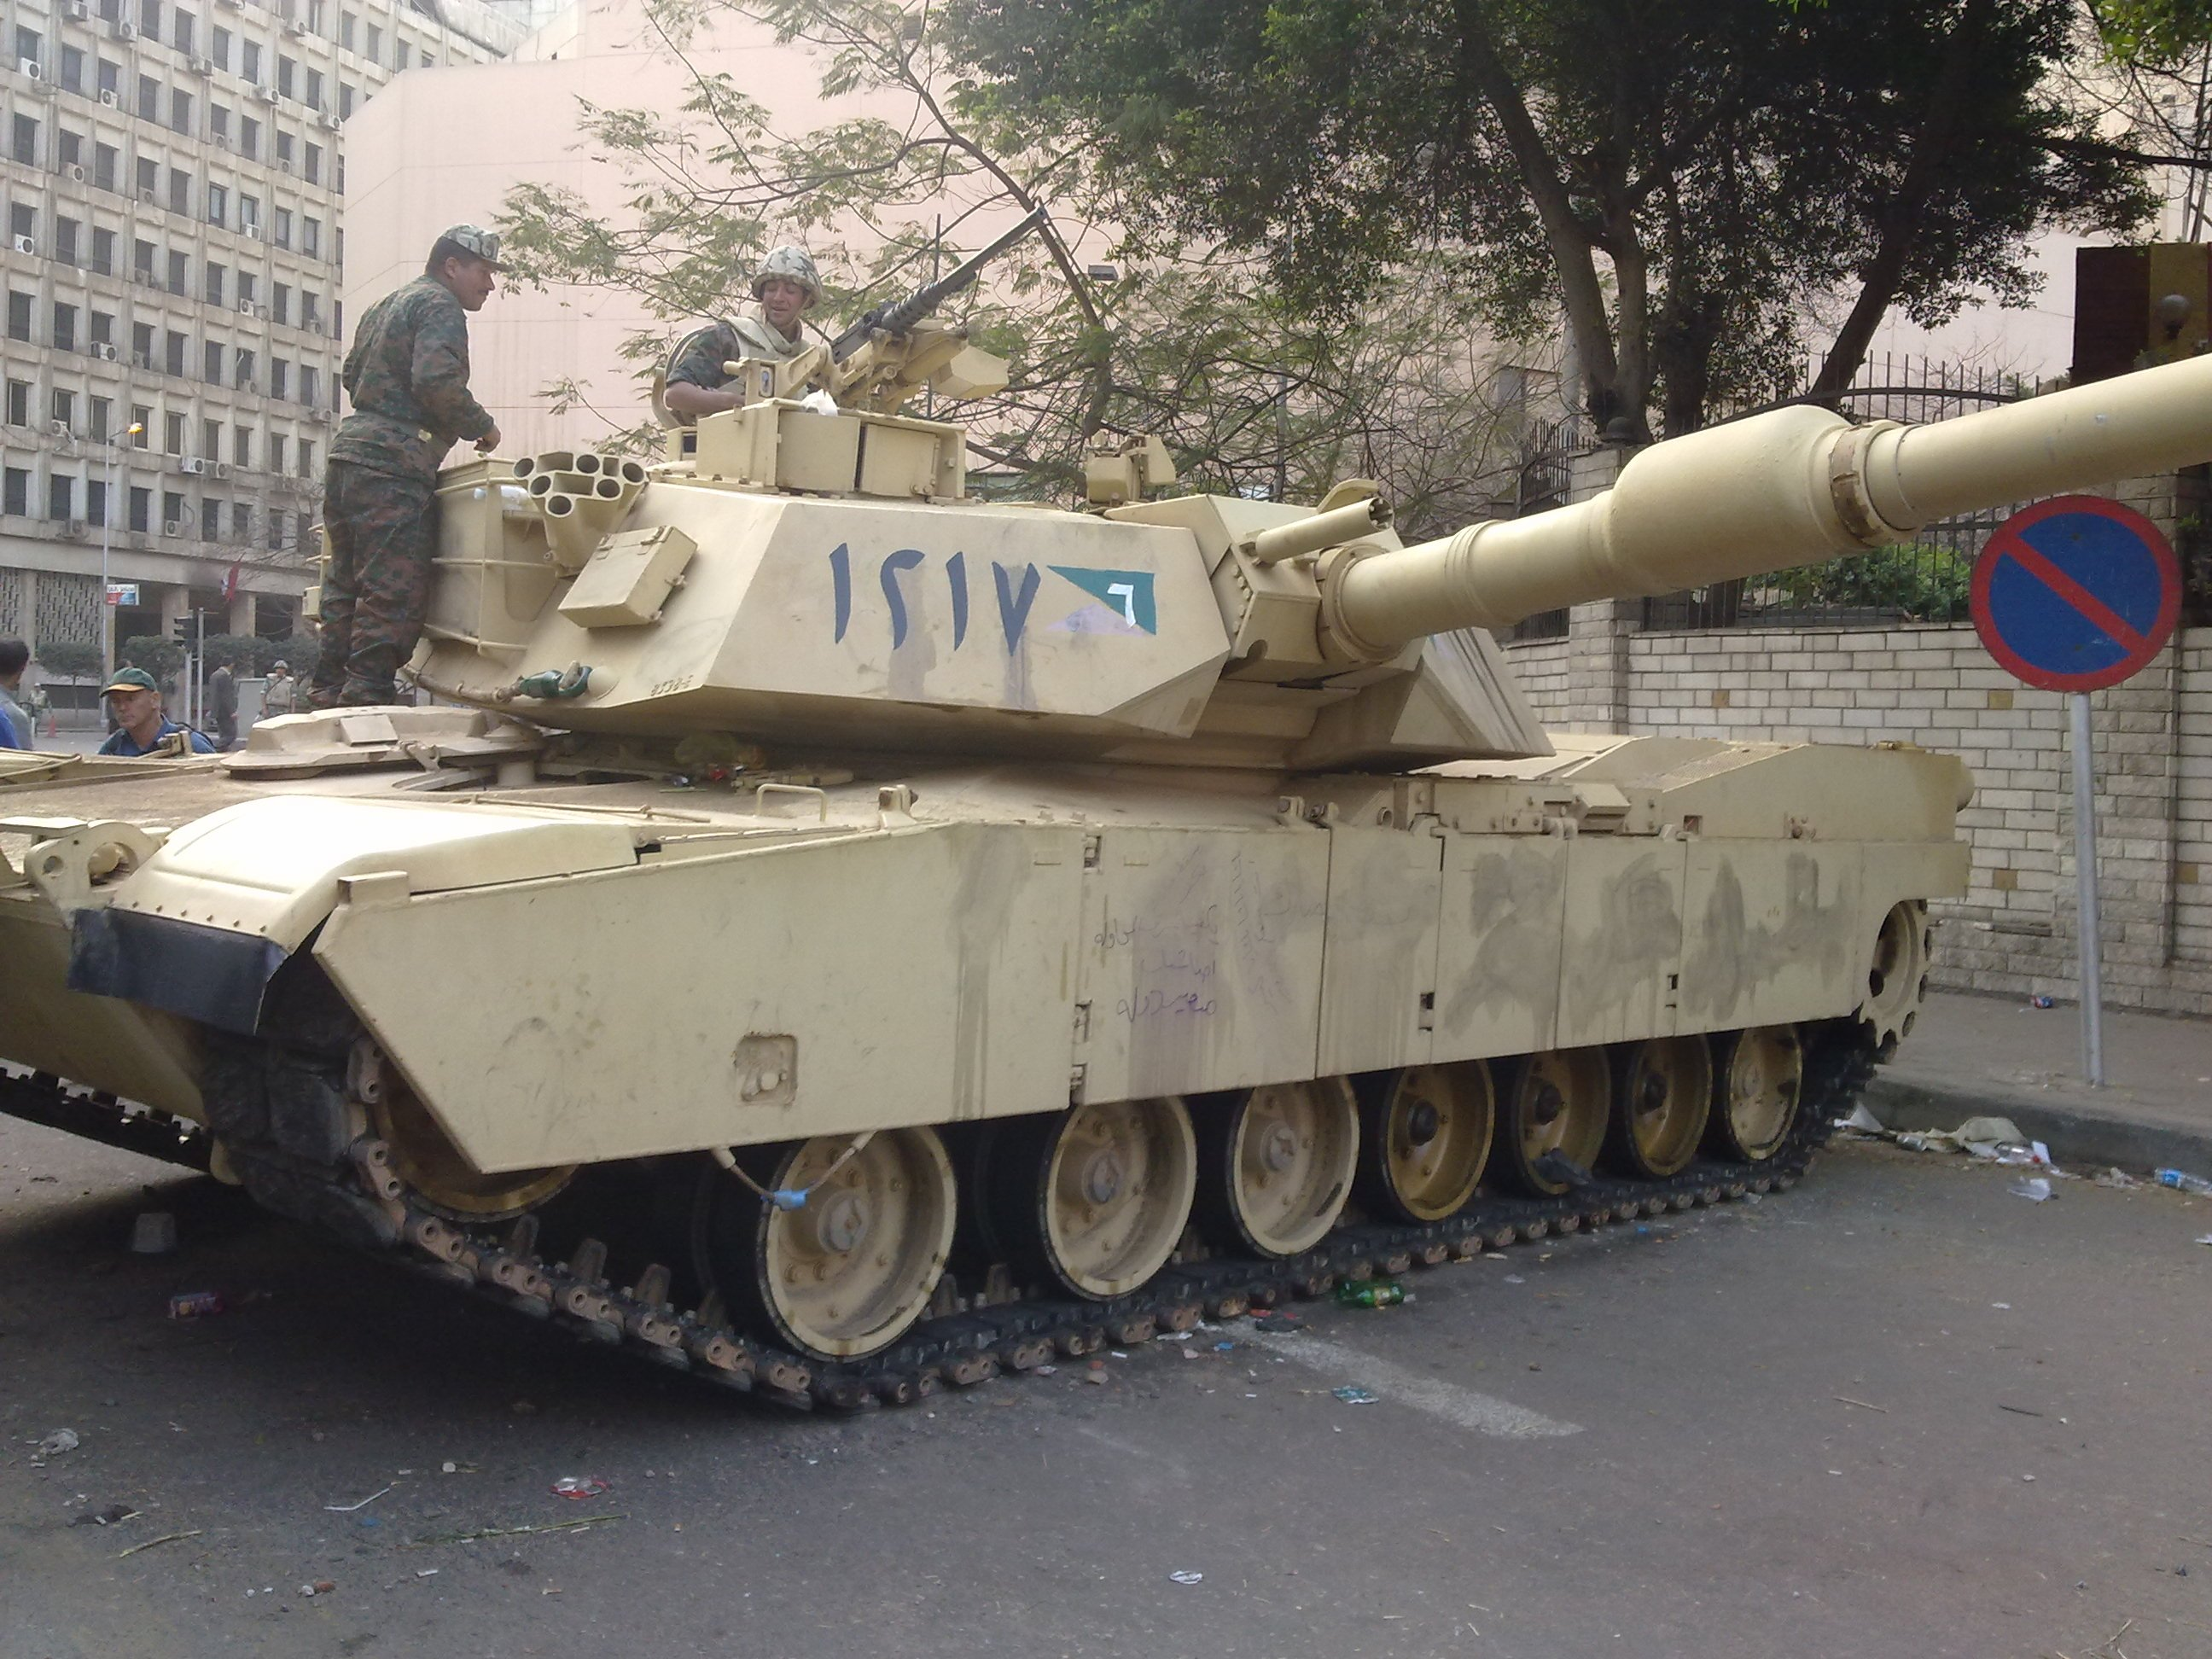 Egyptian_Tank_in_the_streets_of_Cairo_Fe